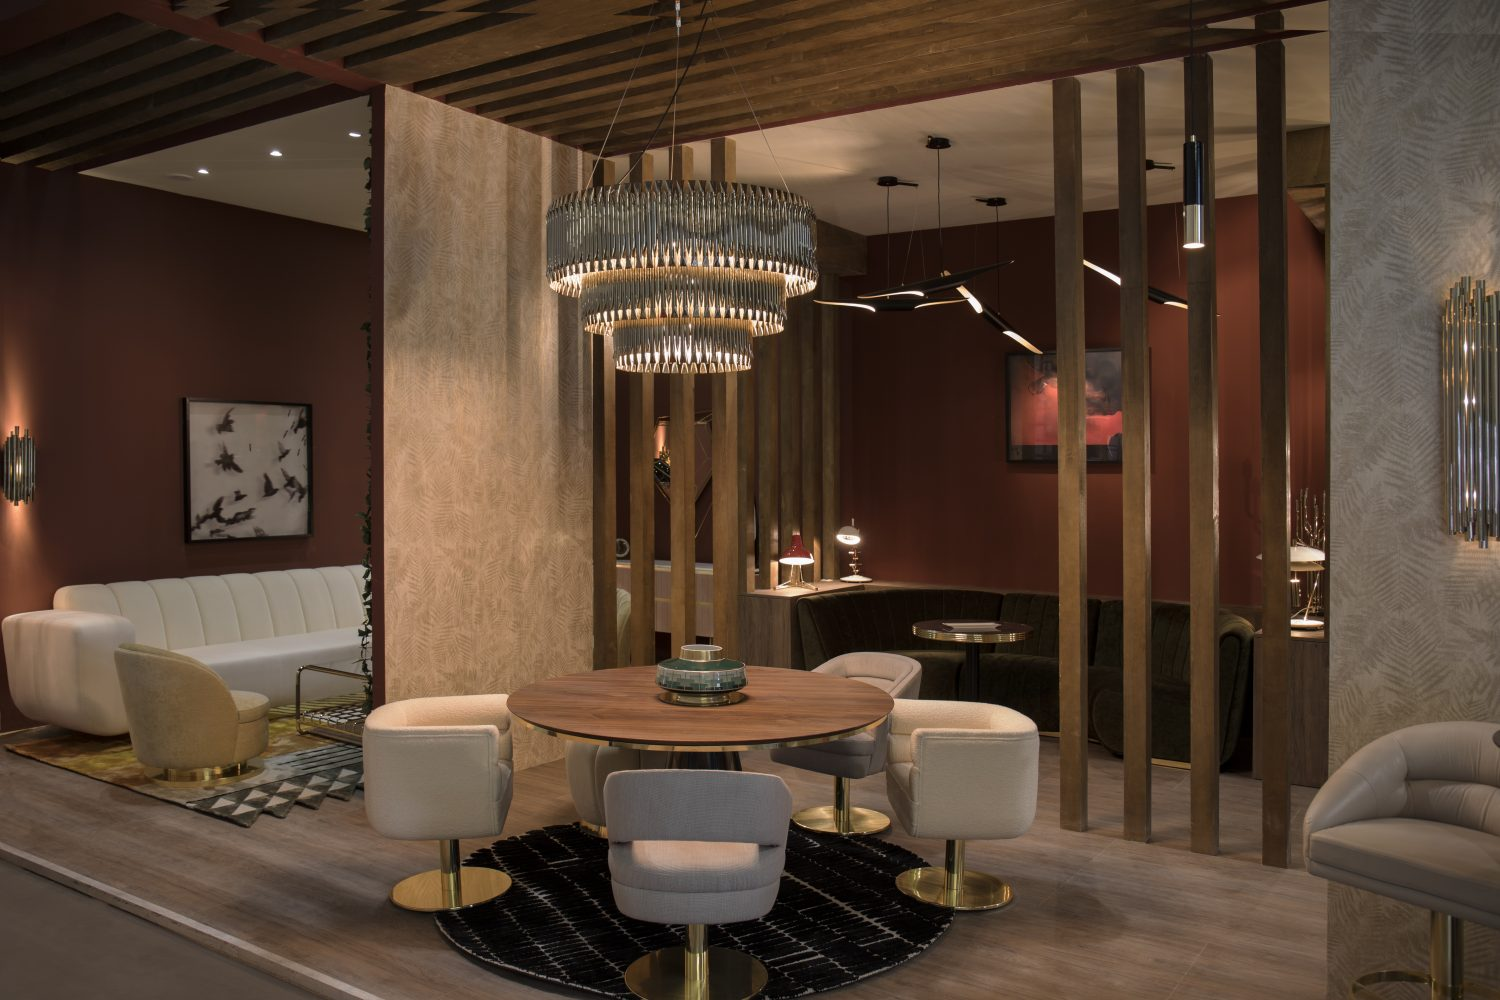 Salone del Mobile 2019 salone del mobile 2019 SALONE DEL MOBILE 2019: THE HIGHLIGHTS OF DAY ONE essentila home